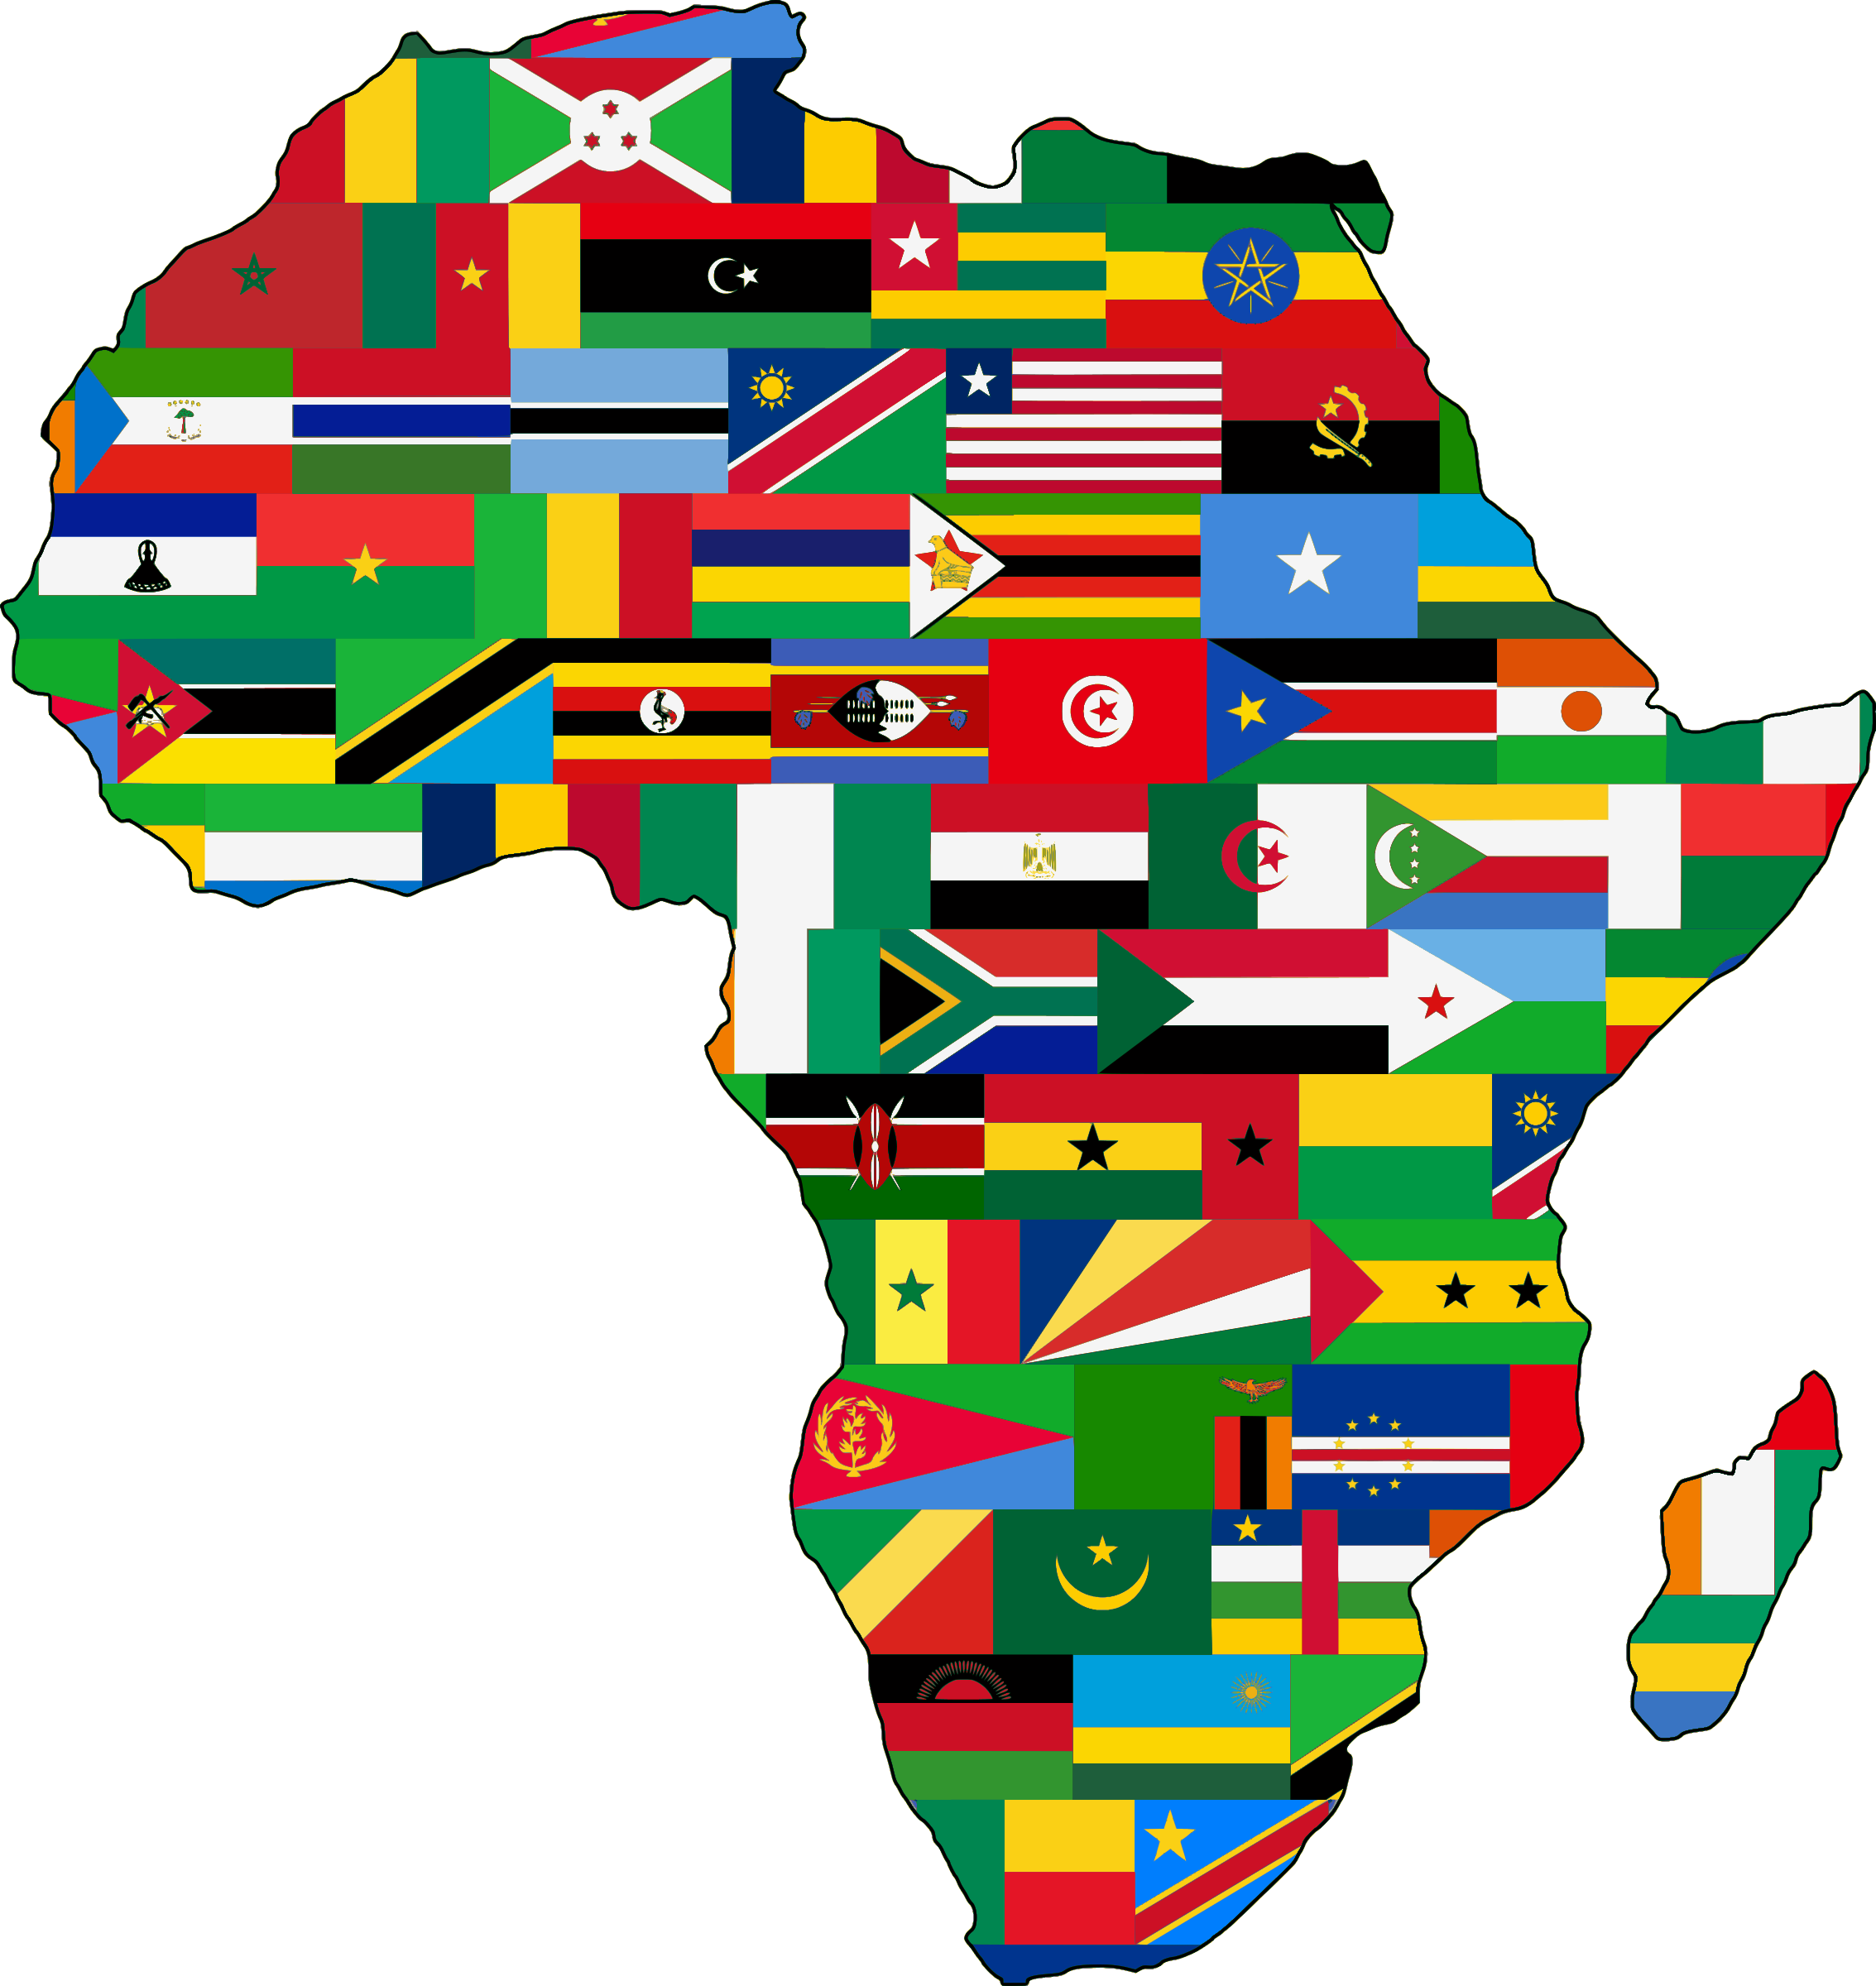 Africa flags by Firkin